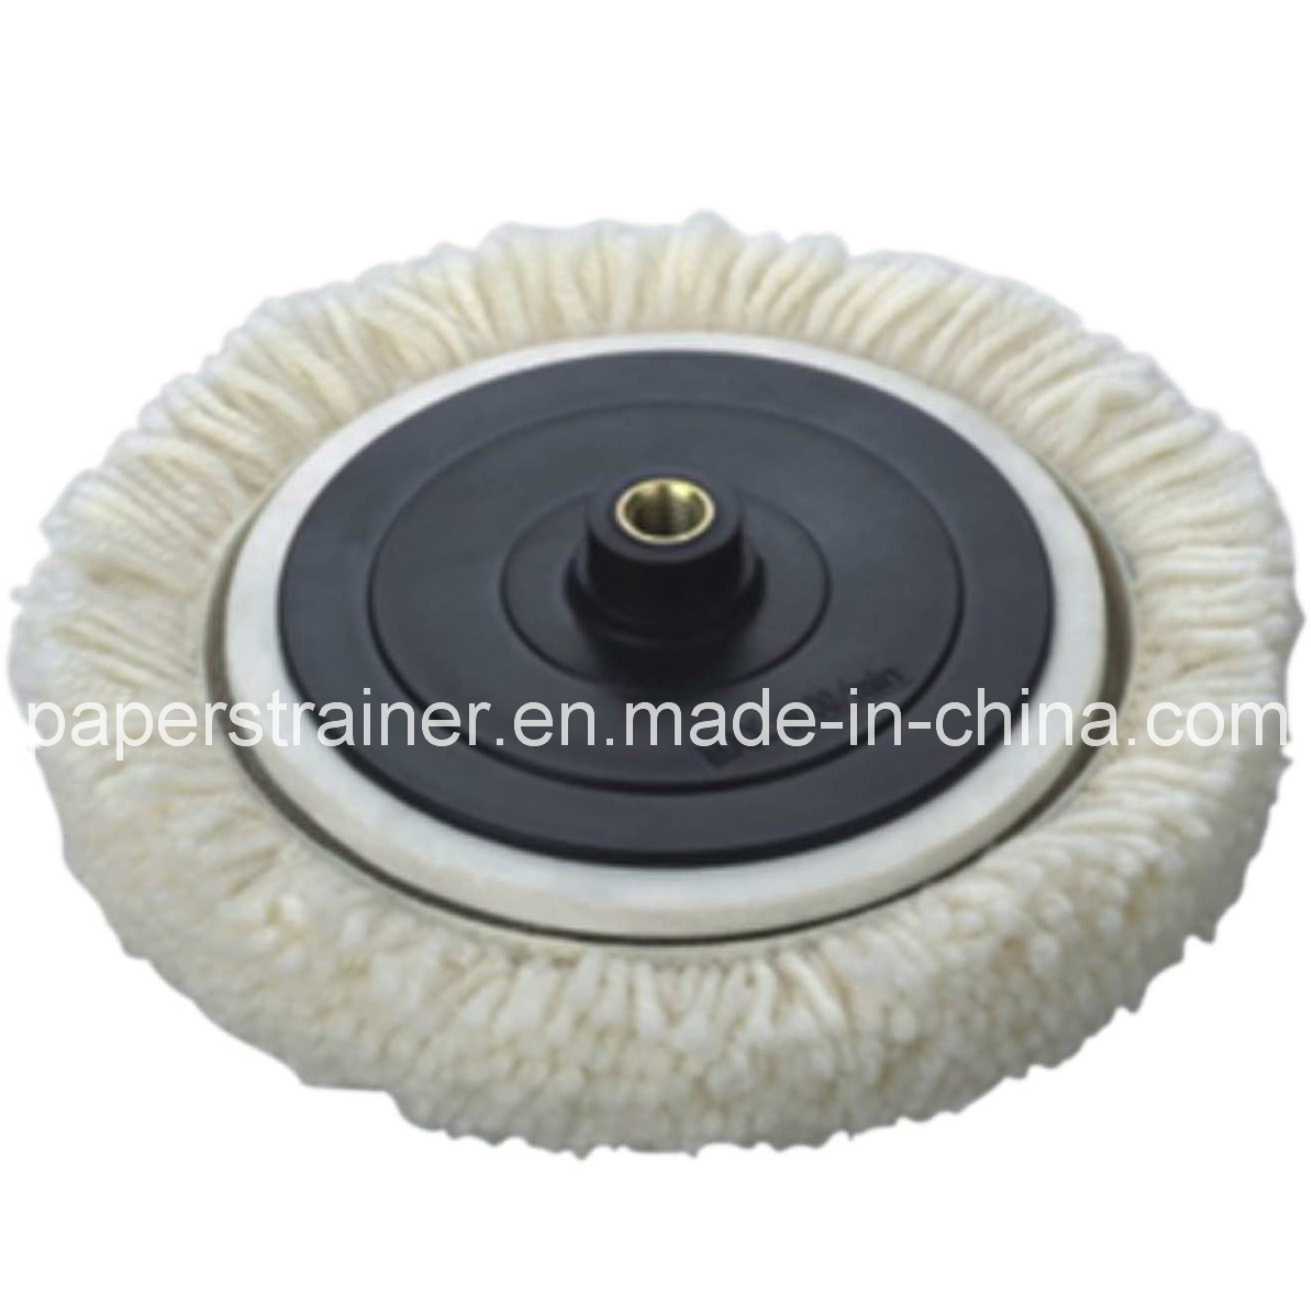 180mm Wool Polishing Pad for Car Refinish